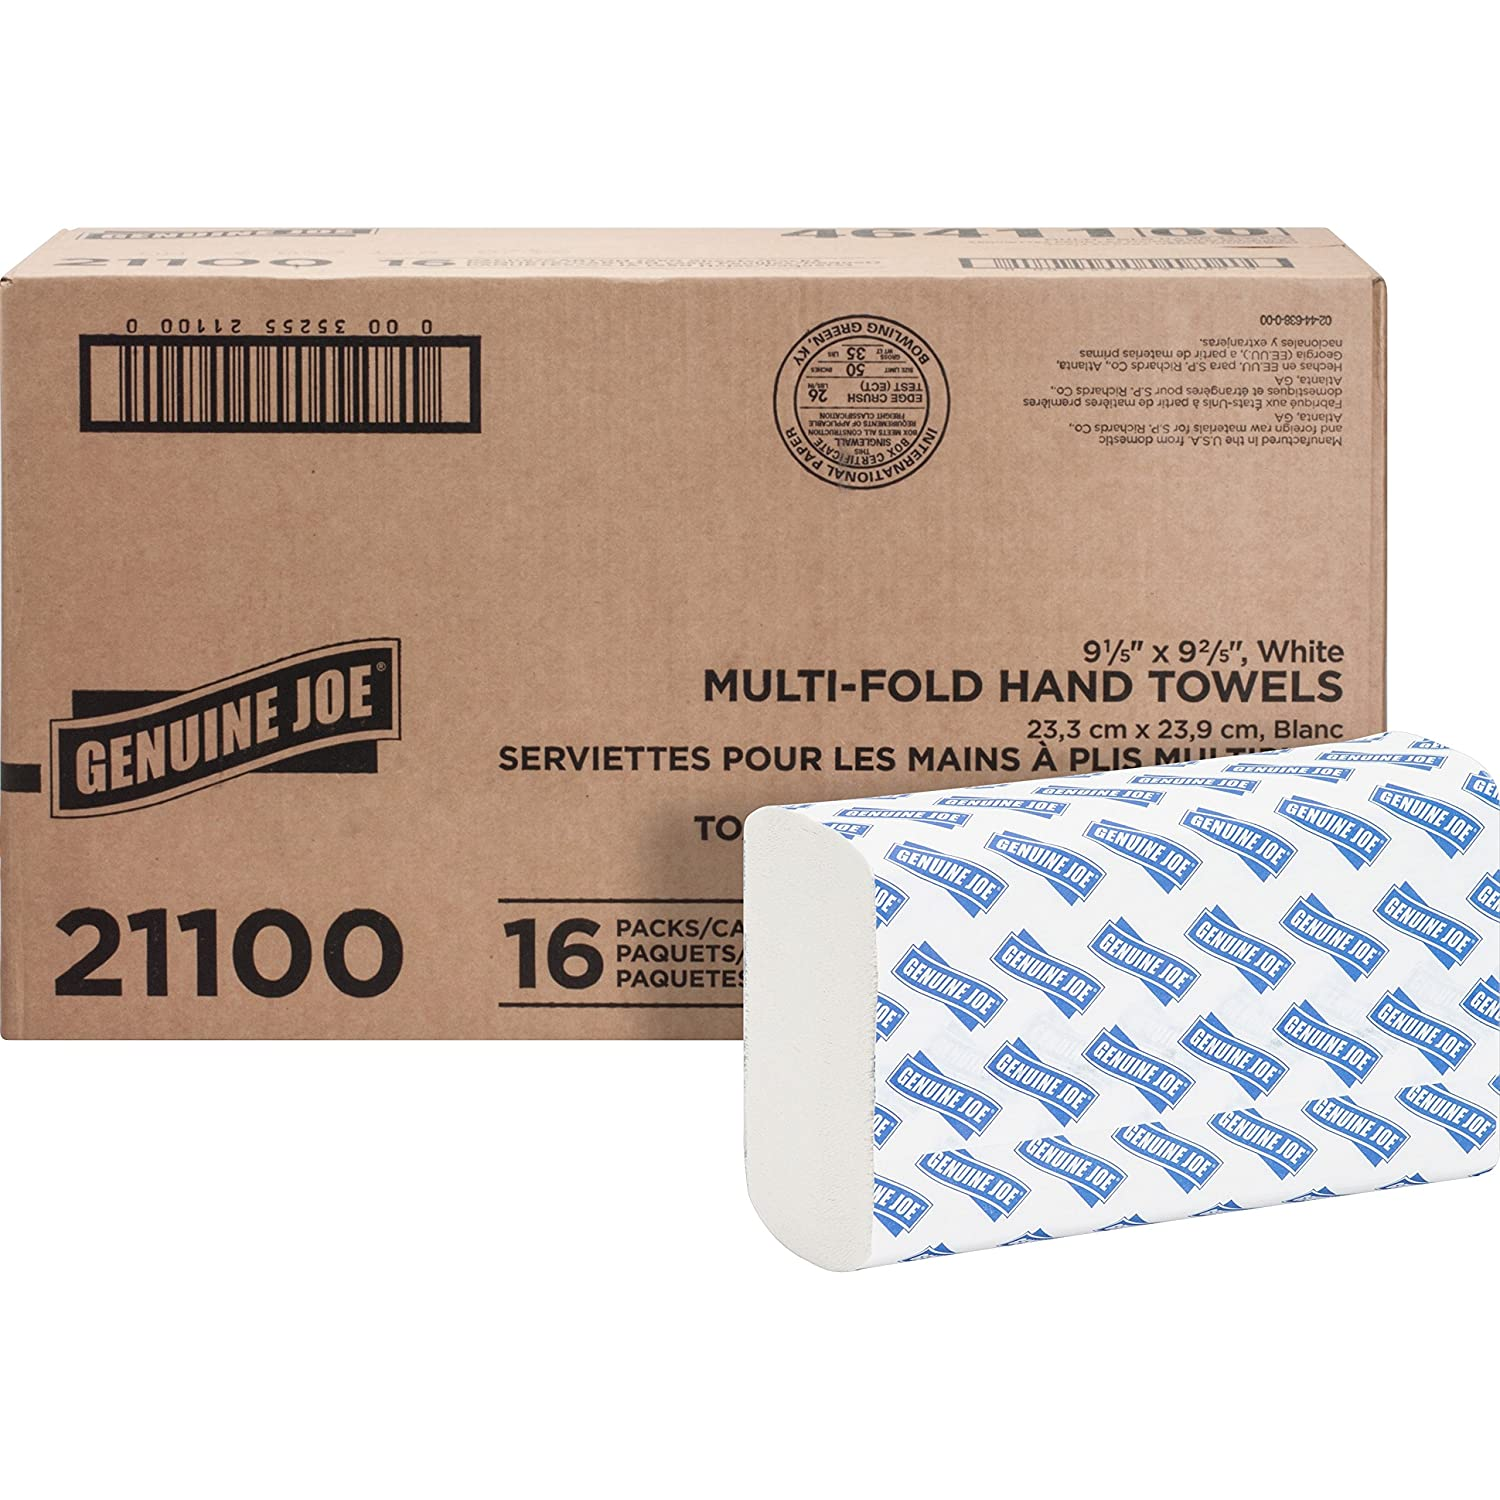 Hot GJO21100 - Genuine Joe Multi-Fold Paper Towel for sale